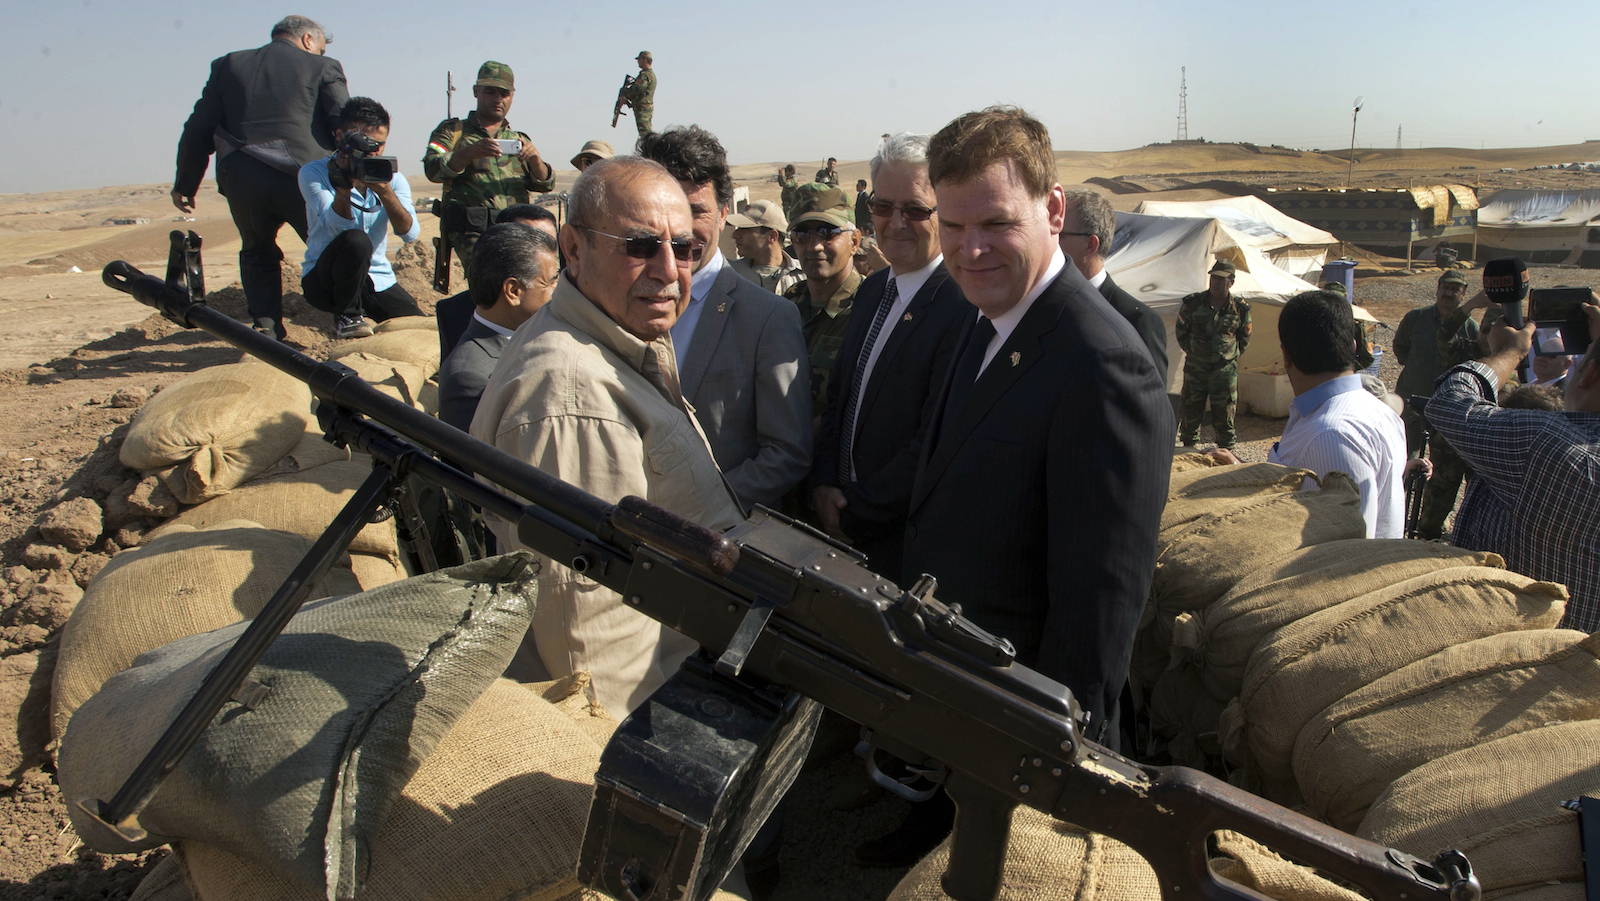 Canadian Foreign Affairs Minister John Baird, right, andIraqi Deputy Minister Rowsch Nouri Sharways look at the ISIS positions from a front line bunker Thursday, September 4, 2014 in Kalak, Iraq. THE CANADIAN PRESS/Ryan Remiorz